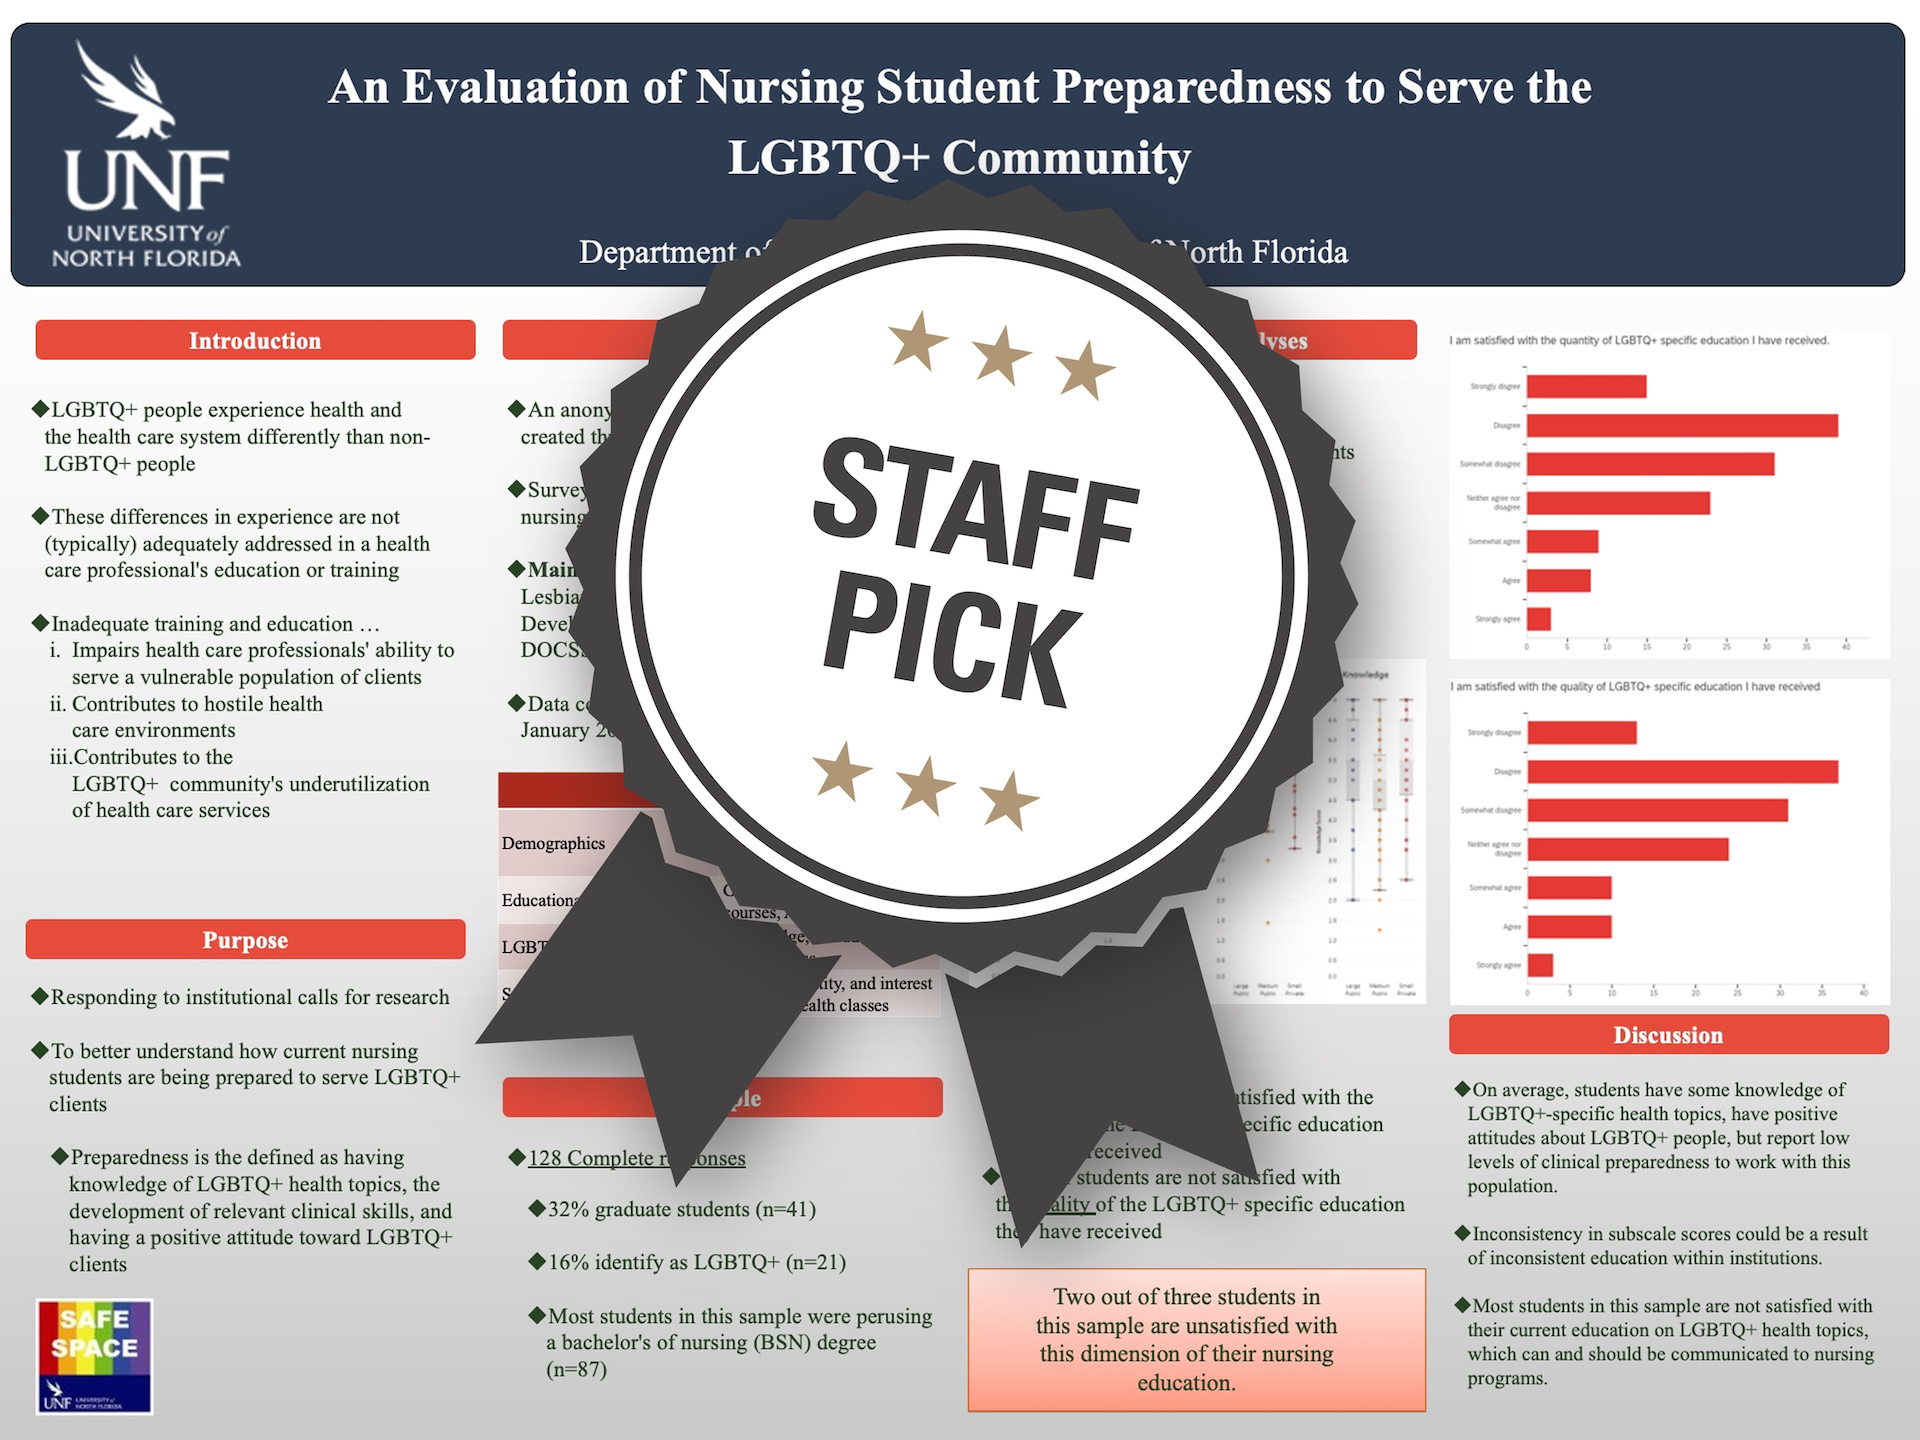 An Evaluation of Nursing Student Preparedness to Serve the LGBTQ+ Community Staff Pick poster